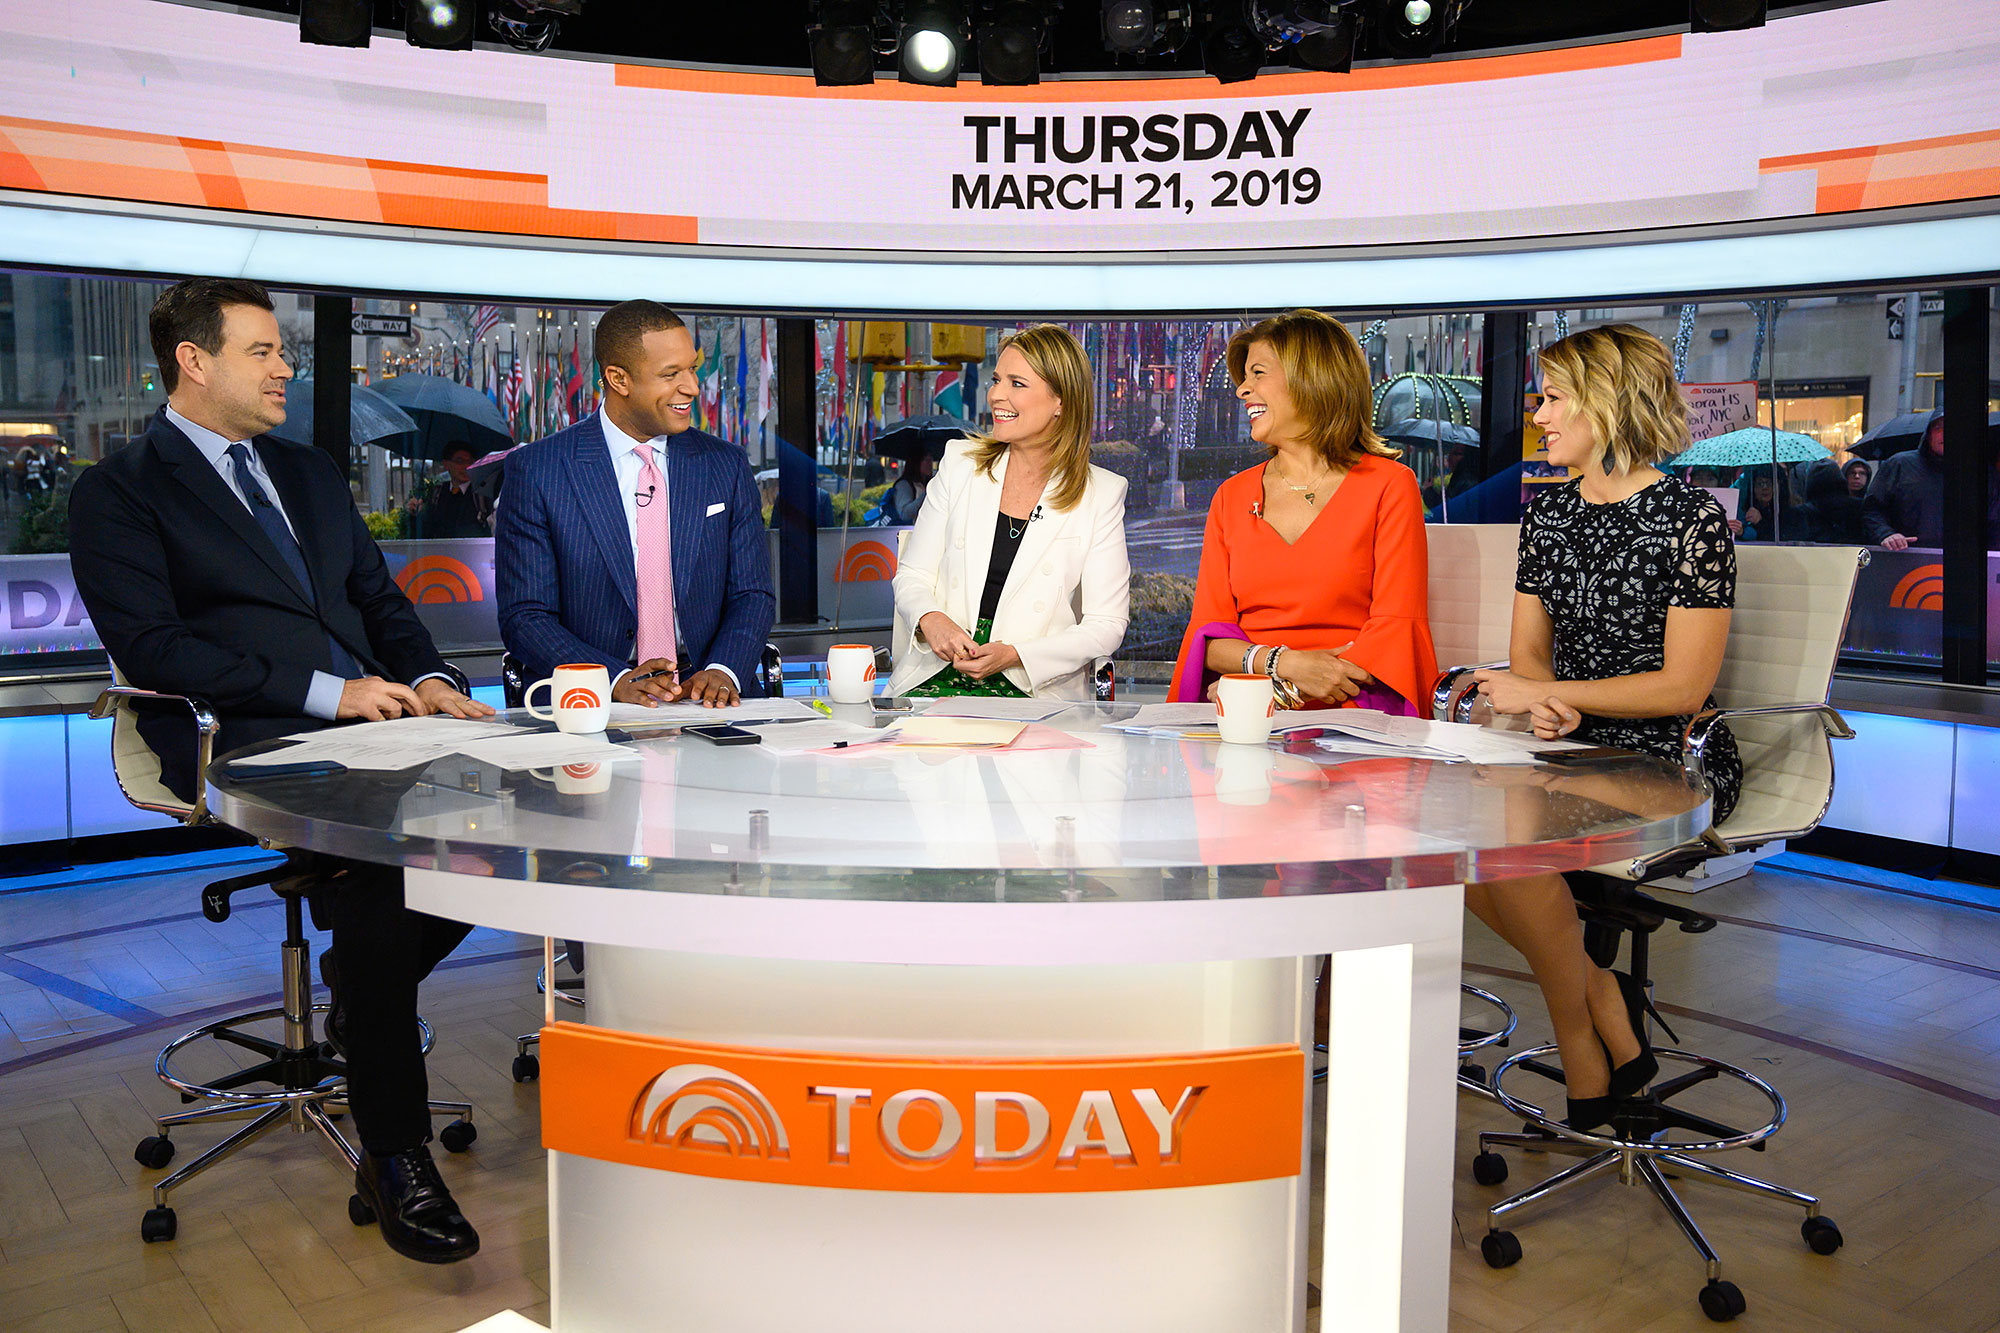 Carson Daly Reveals He Is 'Scared of Loving' His Three Kids Too Much - Carson Daly, Craig Melvin, Savannah Guthrie, Hoda Kotb and Dylan Dreyer on Thursday, March 21, 2019.